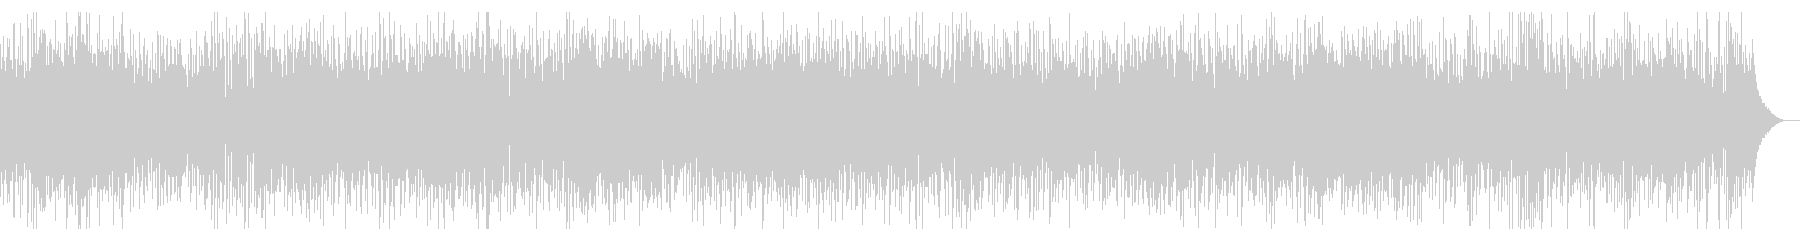 A fast, energetic and hard rock and roll piano band's unreproduced waveform